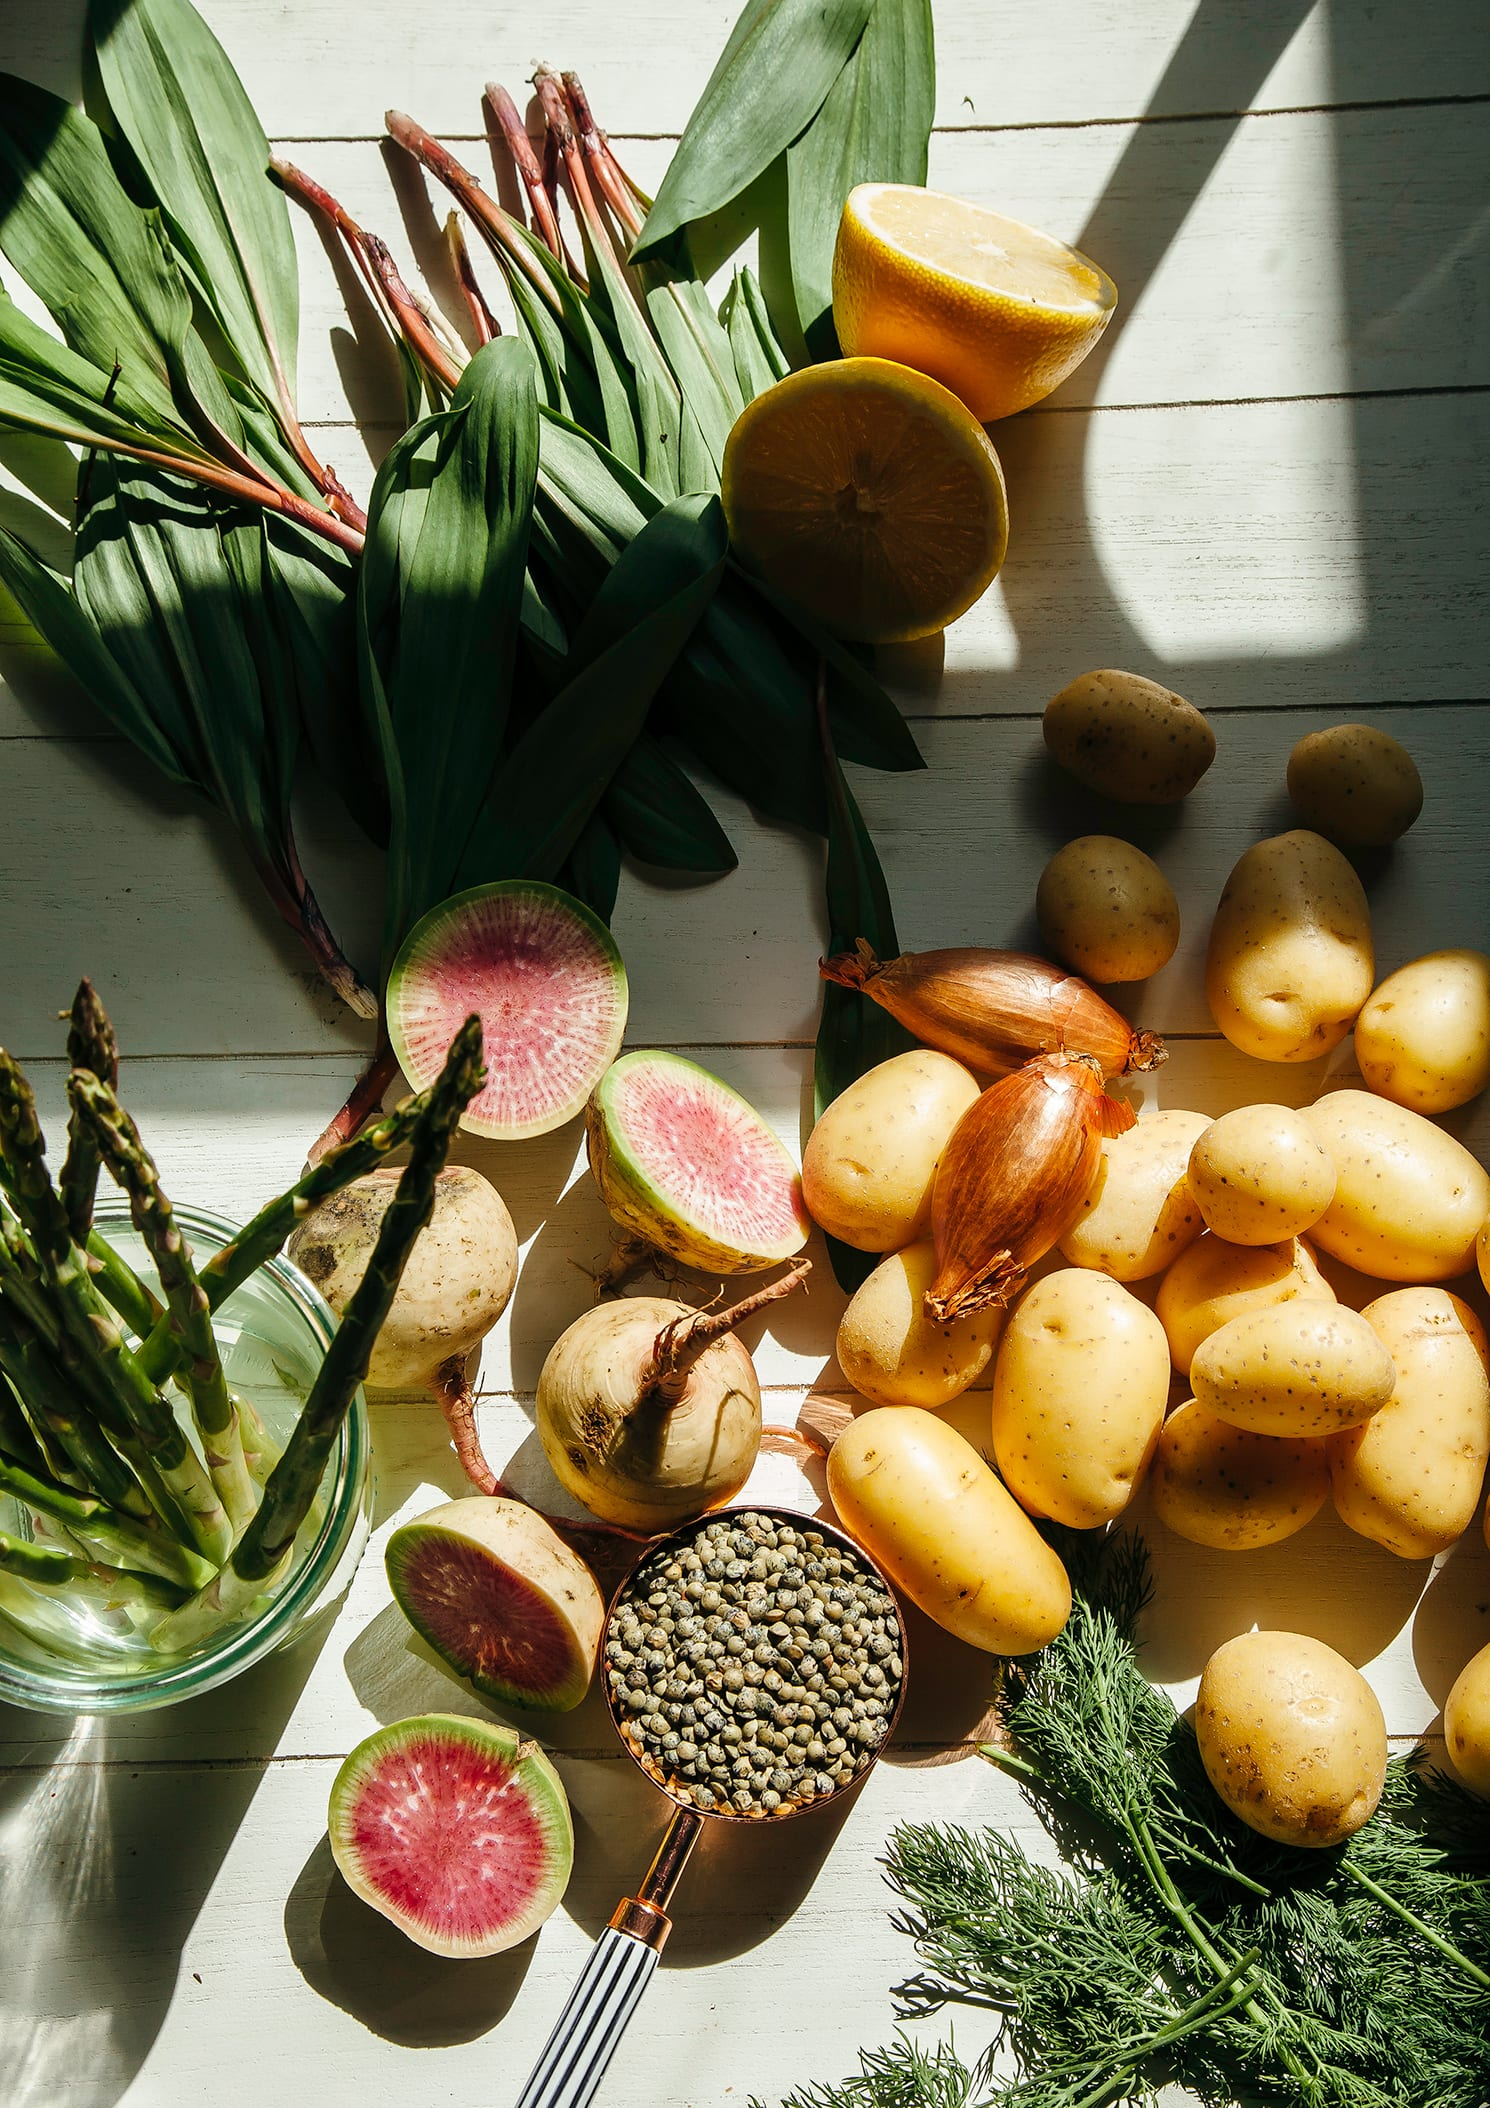 An overhead shot of ingredients for a potato salad.